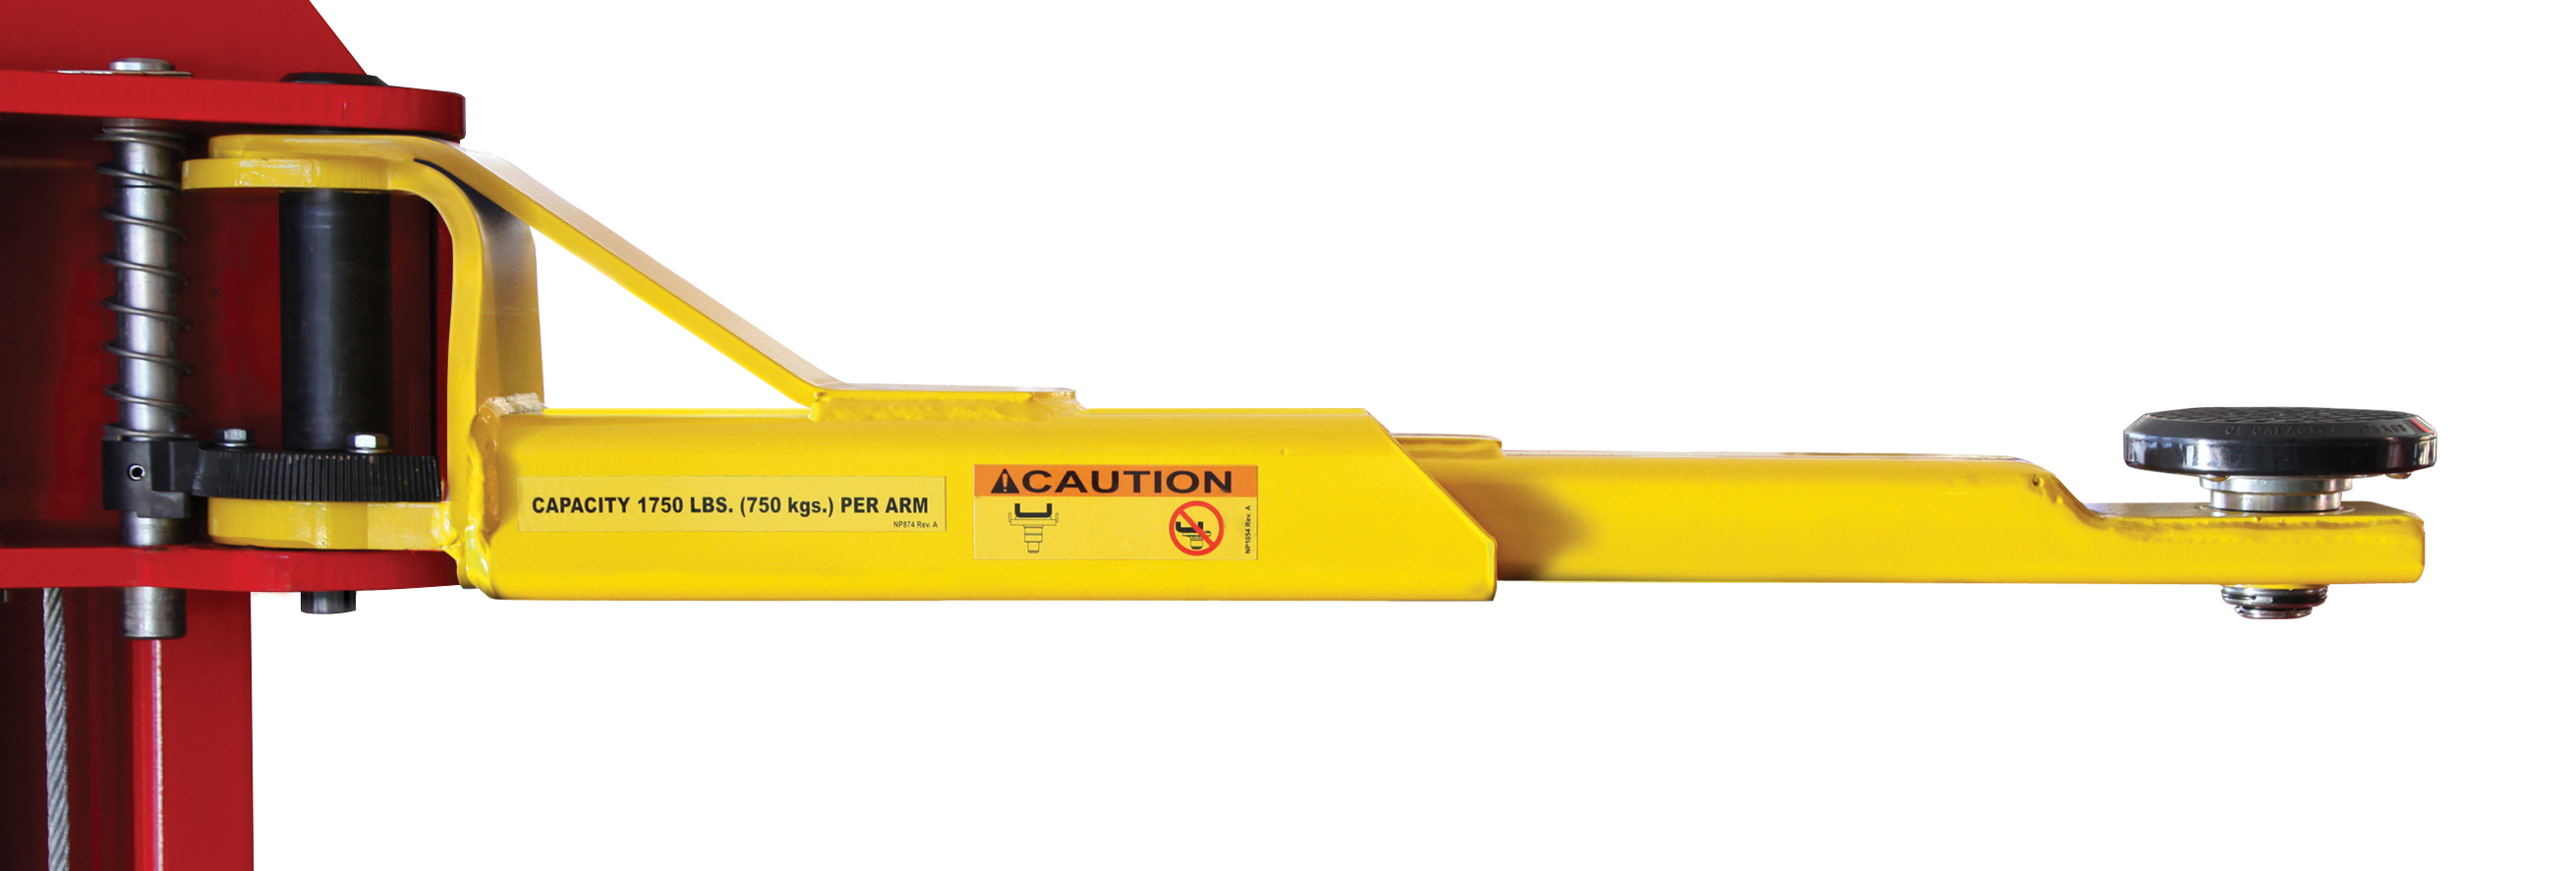 Rotary® SPOA7-LPA Certified Overhead 2-Post Lift